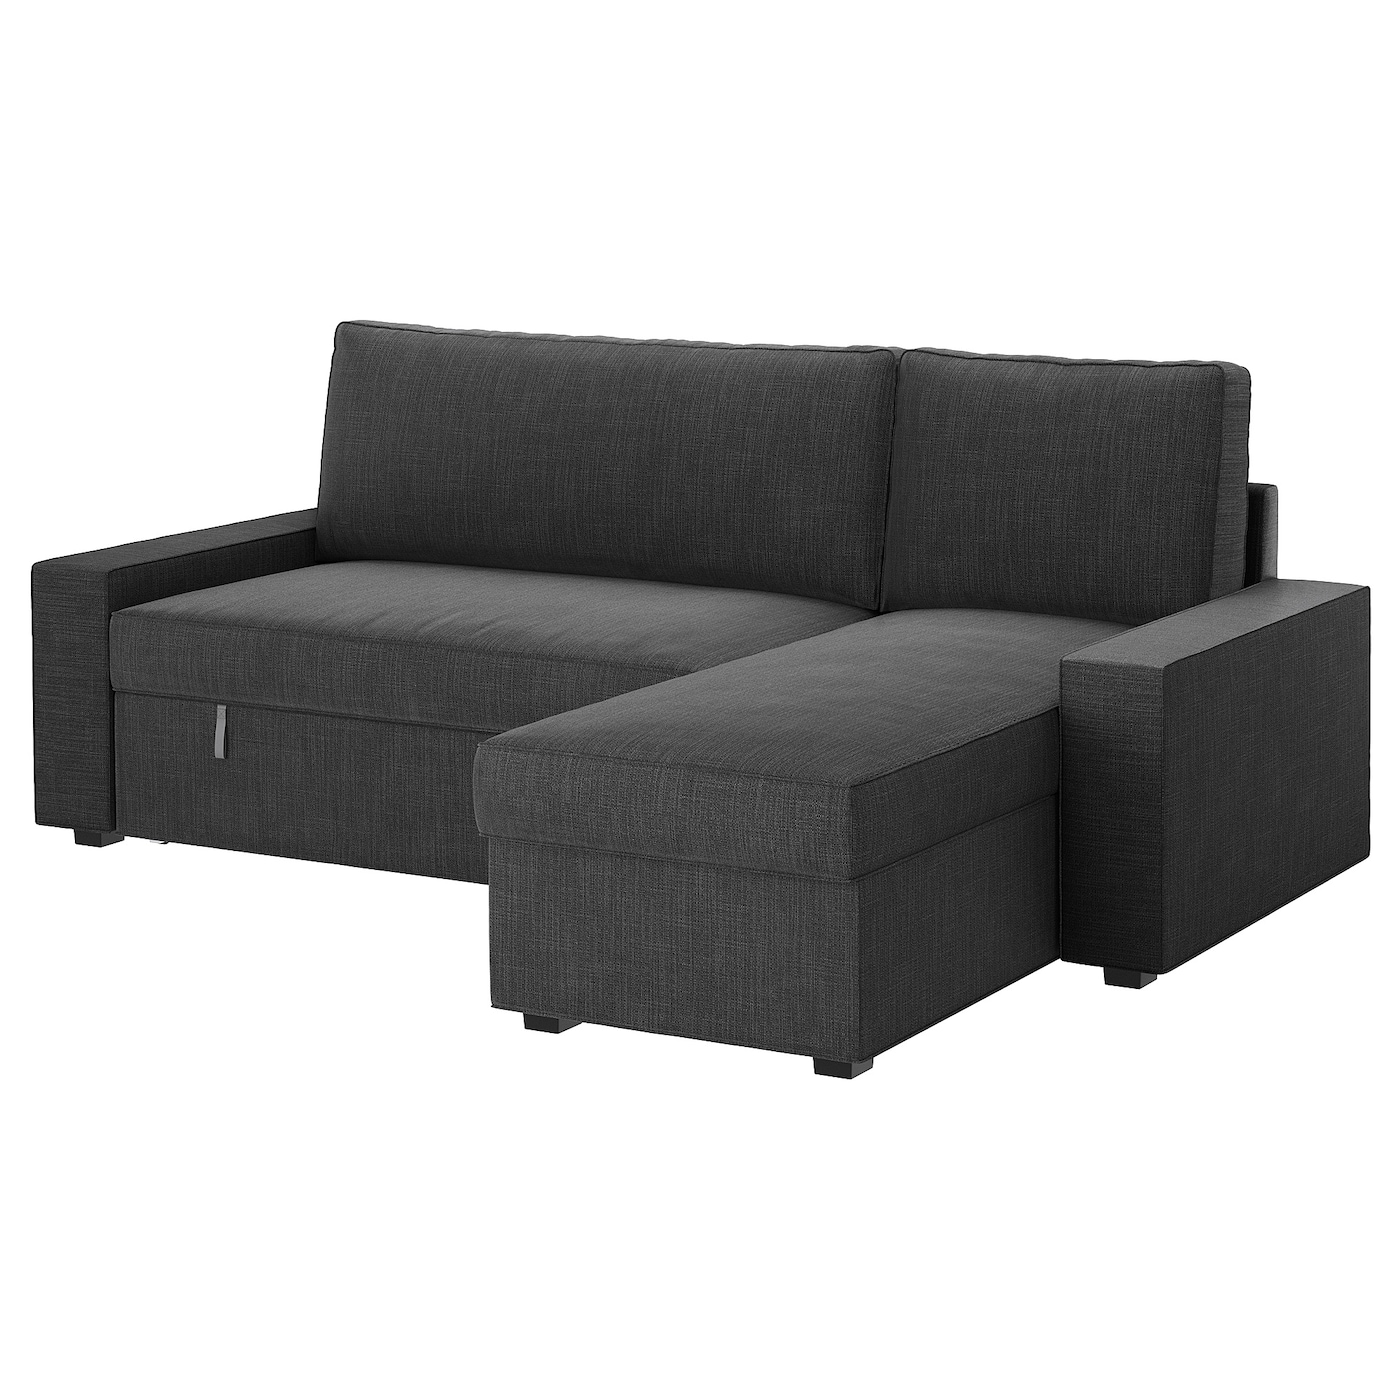 vilasund sofa bed with chaise longue hillared anthracite. Black Bedroom Furniture Sets. Home Design Ideas